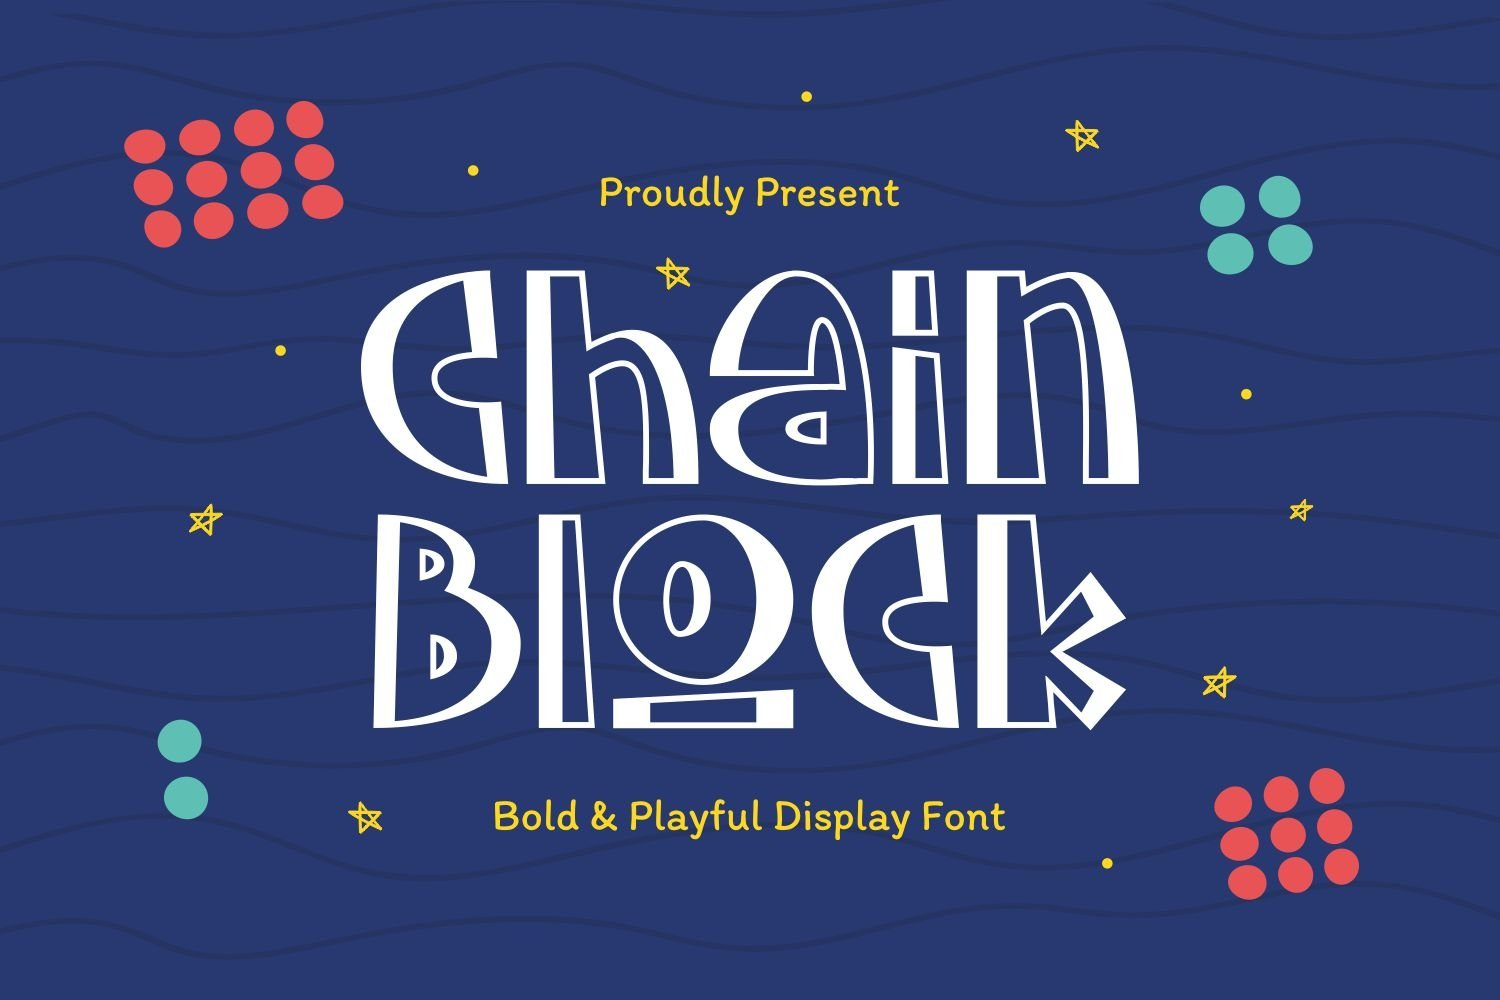 Chainblock - Bold & Playful Display Font example image 1